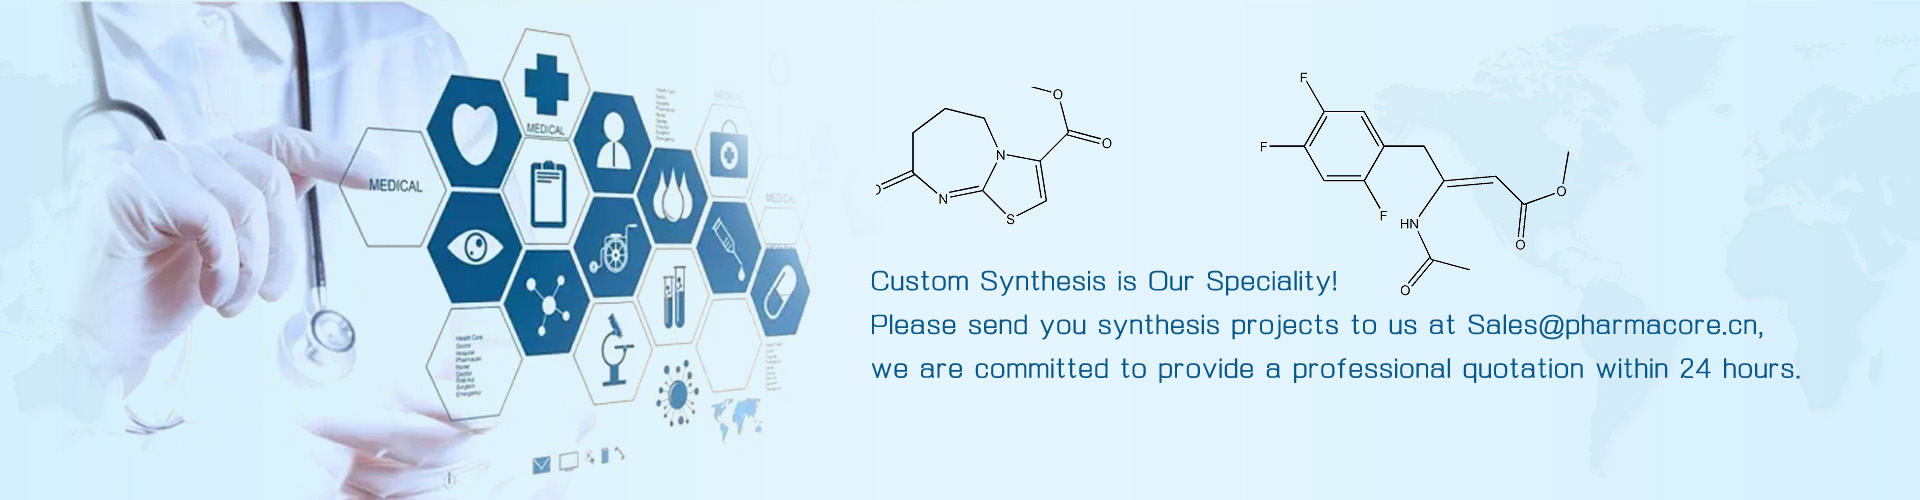 Custom Synthesis banner